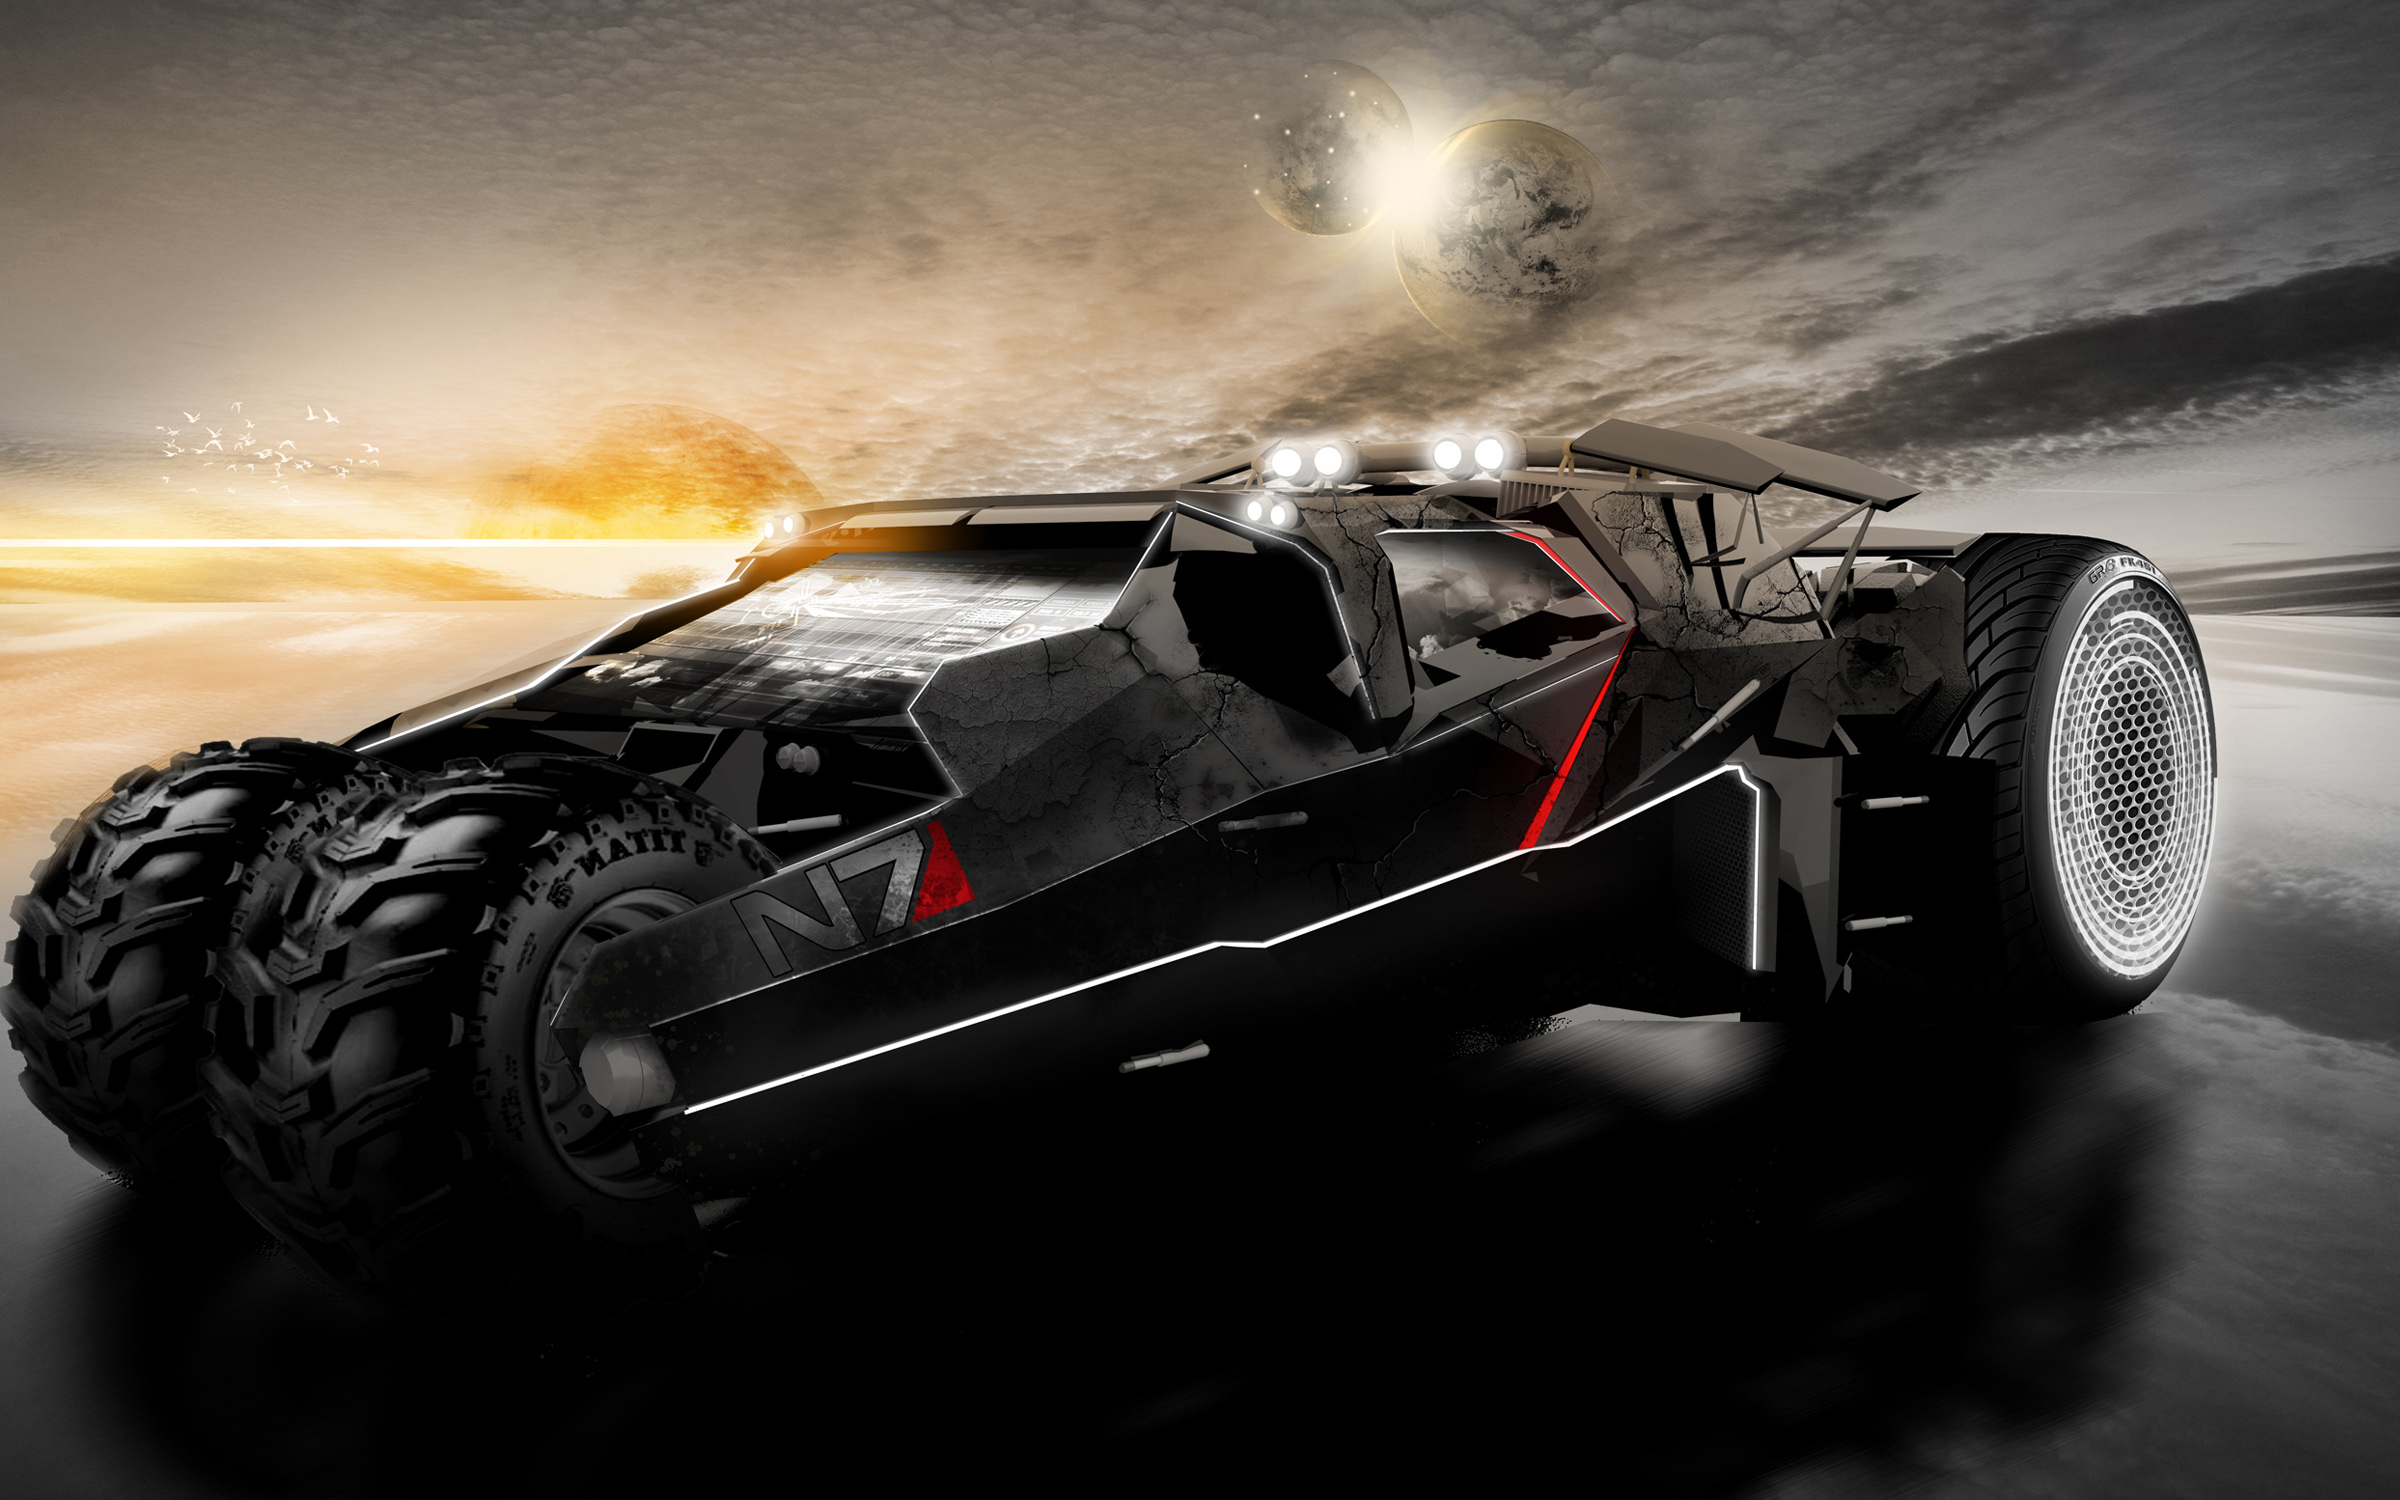 Mass Effect N7 Car Wallpapers HD Wallpapers 2400x1500